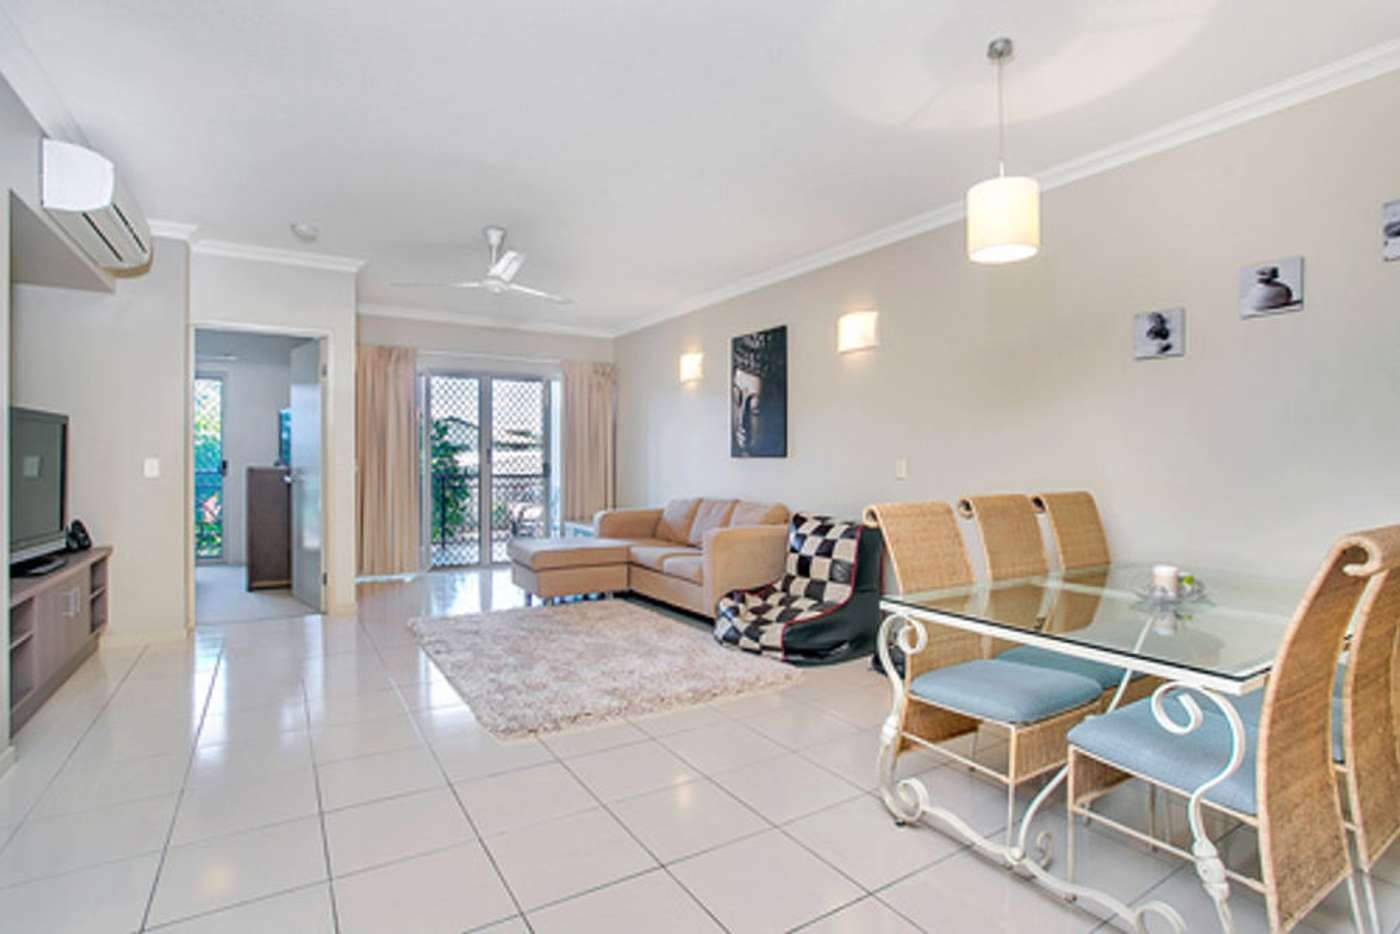 Sixth view of Homely unit listing, 101/10 Gregory Street, Westcourt QLD 4870